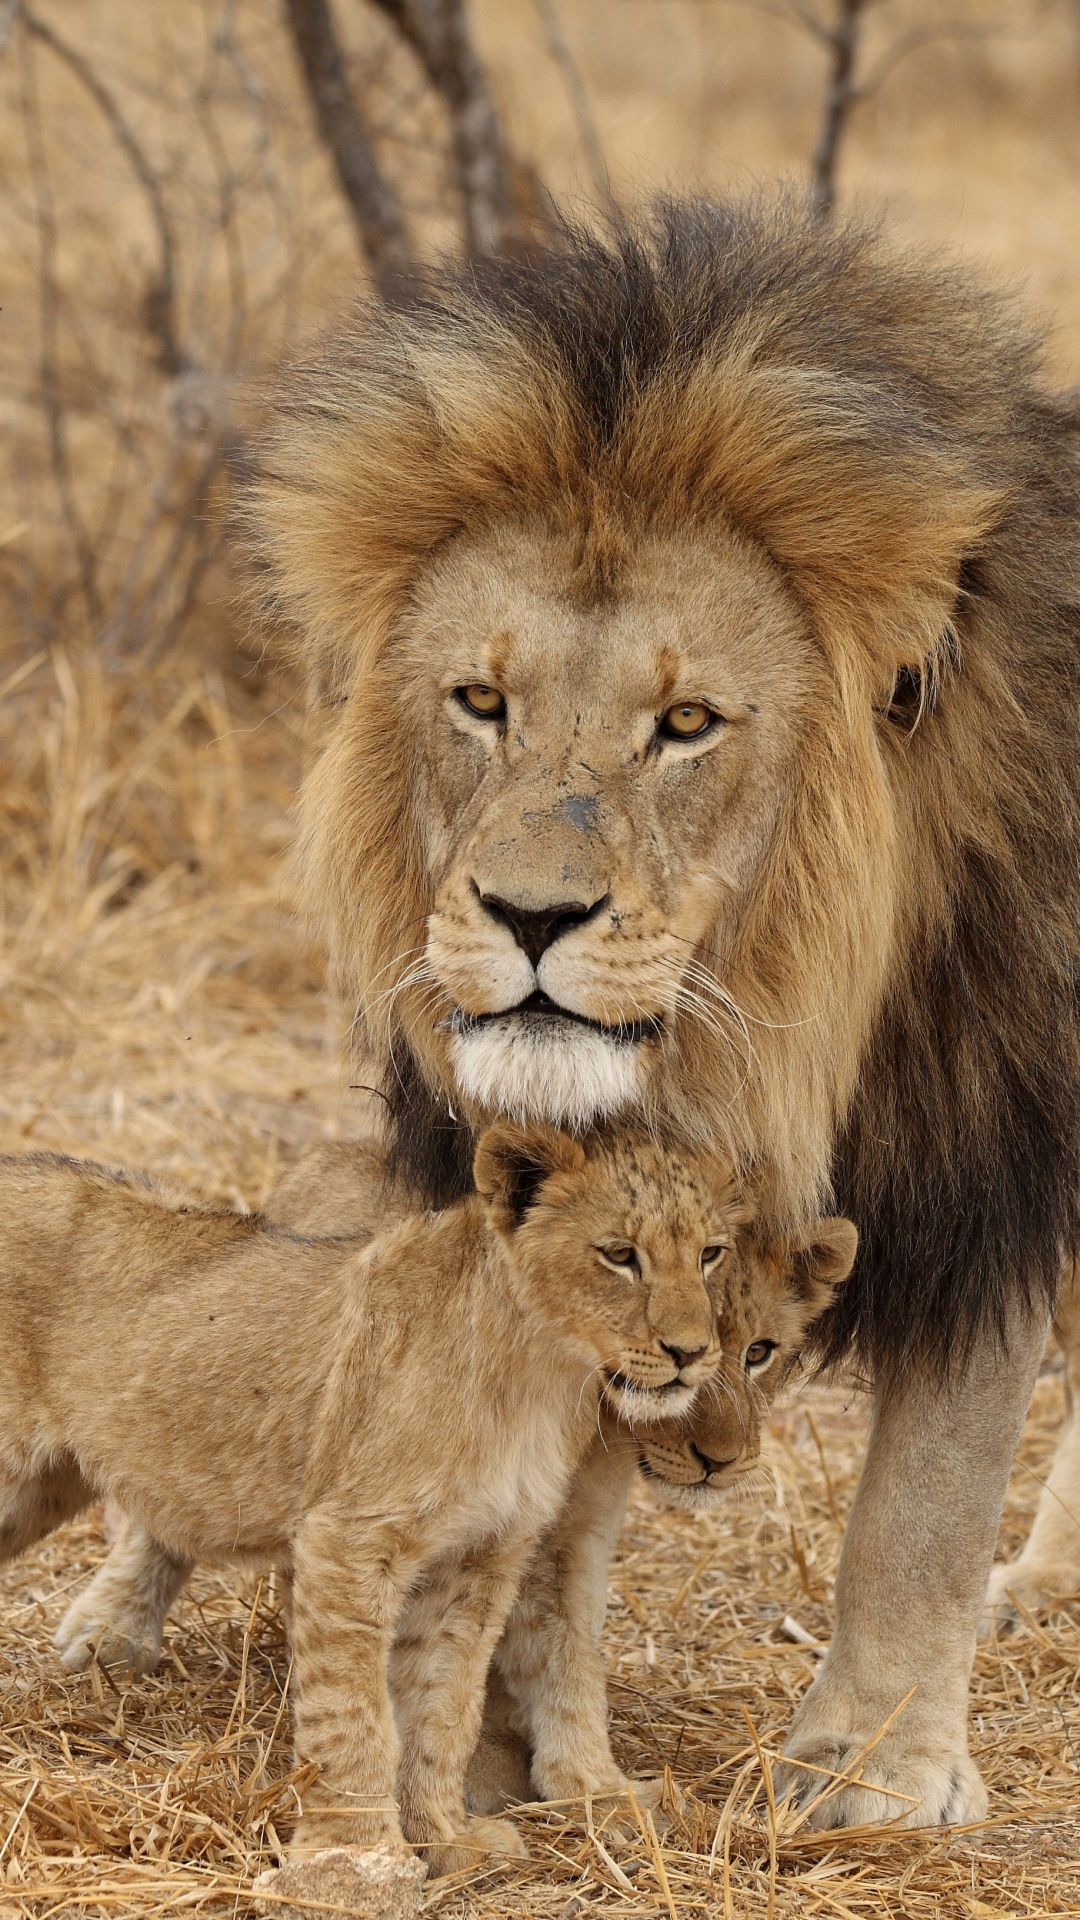 Even-the-King-Of-The-Jungle-has-to-watch-the-kids-lion-male-lion-cubs-family-africa-predators-wallpaper-wp3405275